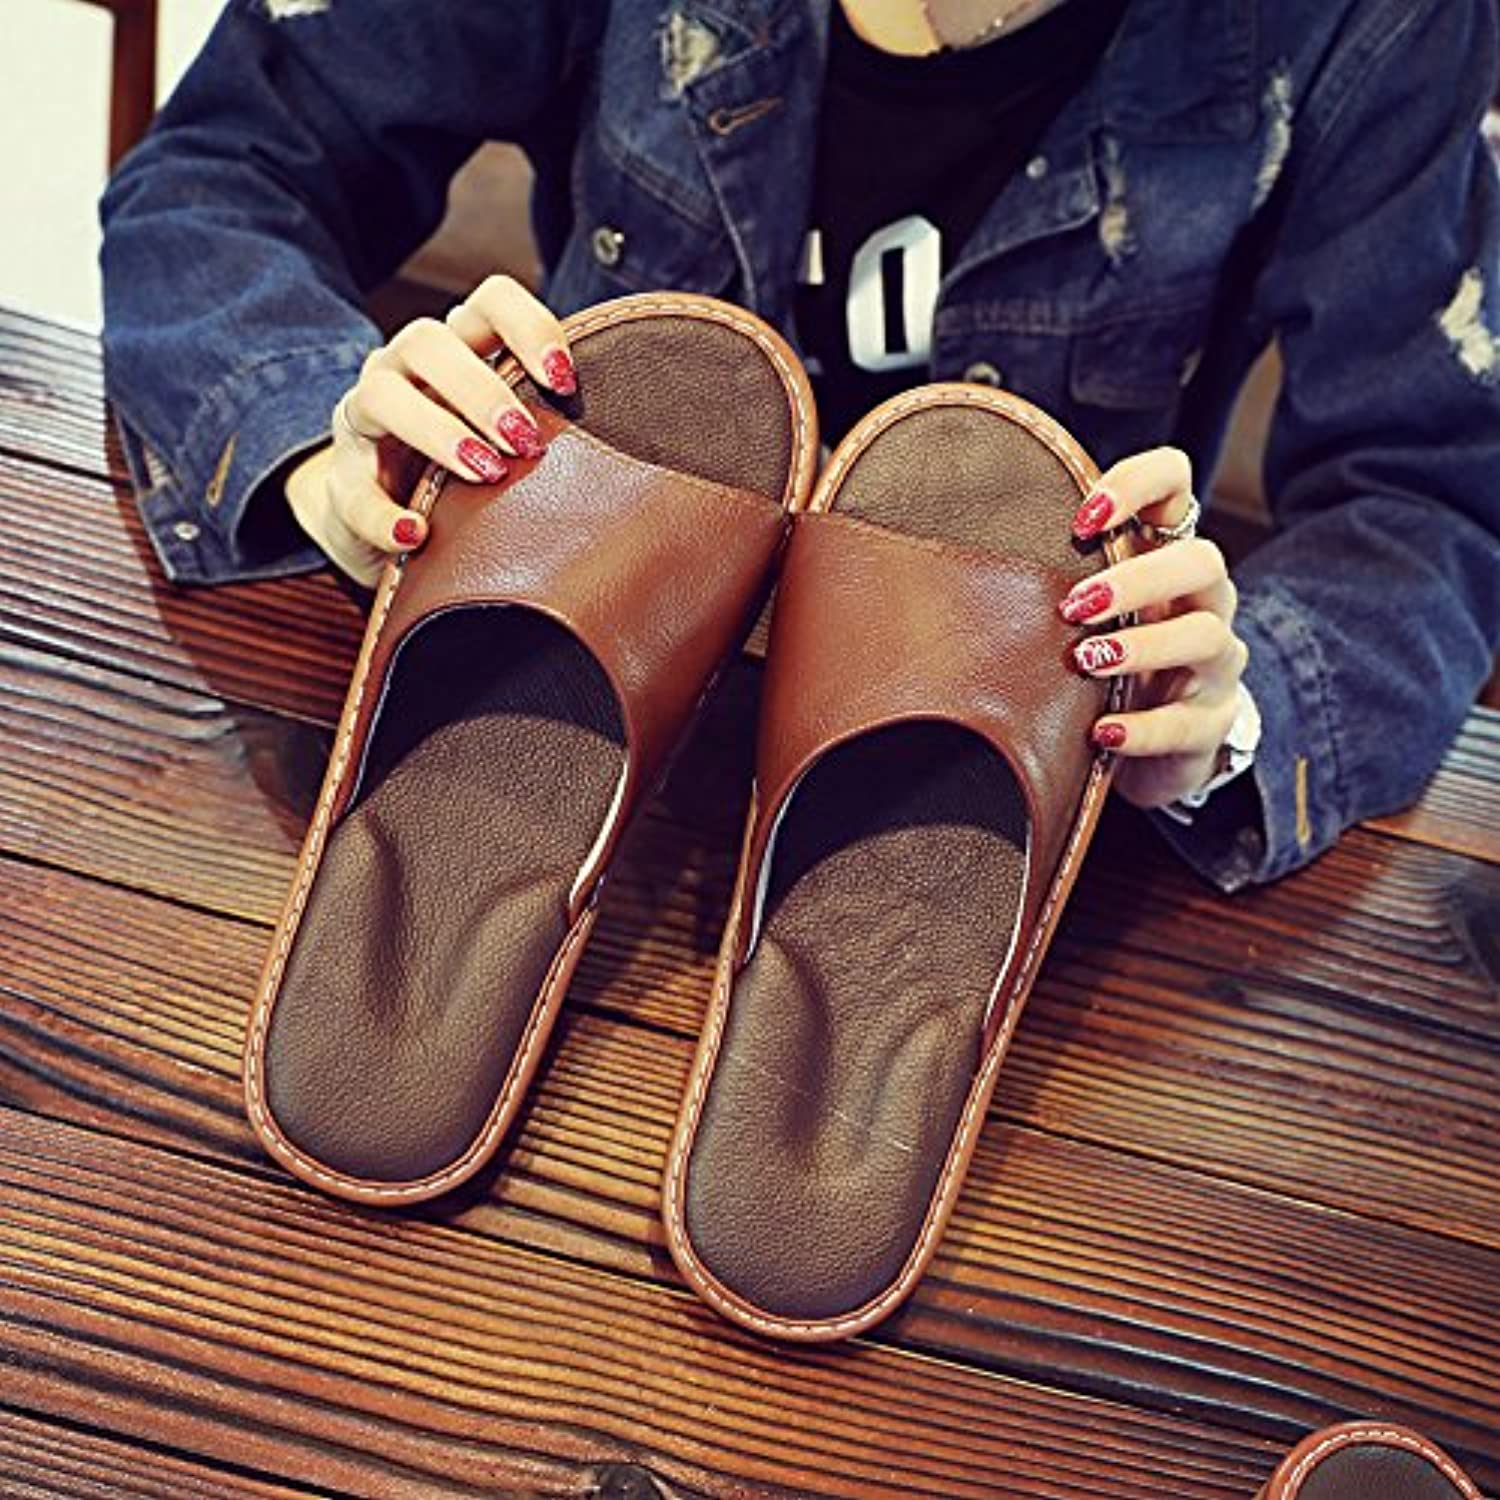 fankou Slippers Female Summer Home Home Interior Wooden Floor Men's Silent Couples Air Cool Slippers,35-36, Brown